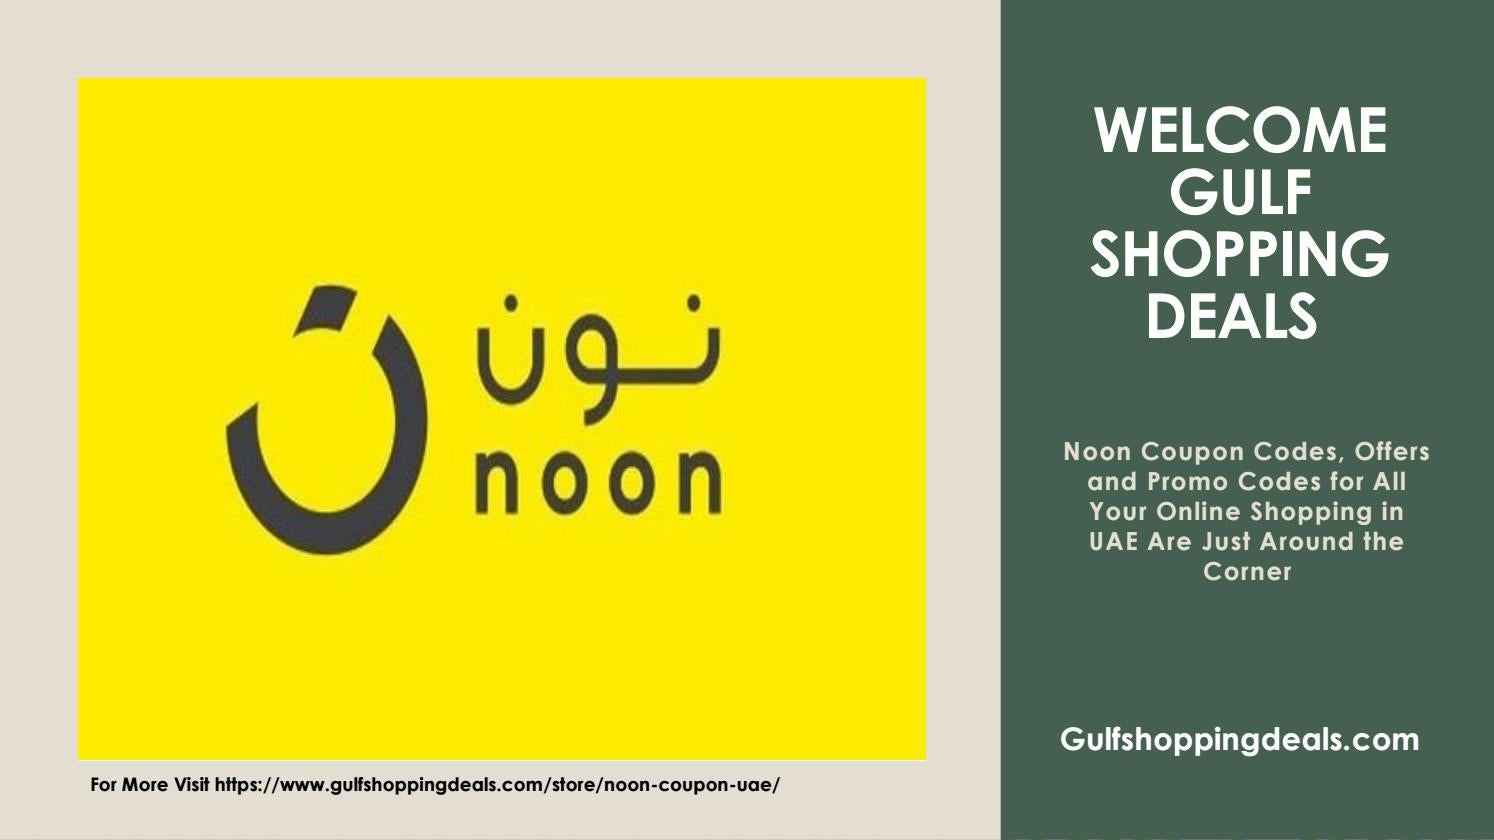 Noon Discount Coupon Codes at Gulfshoppingdeals by Gulf